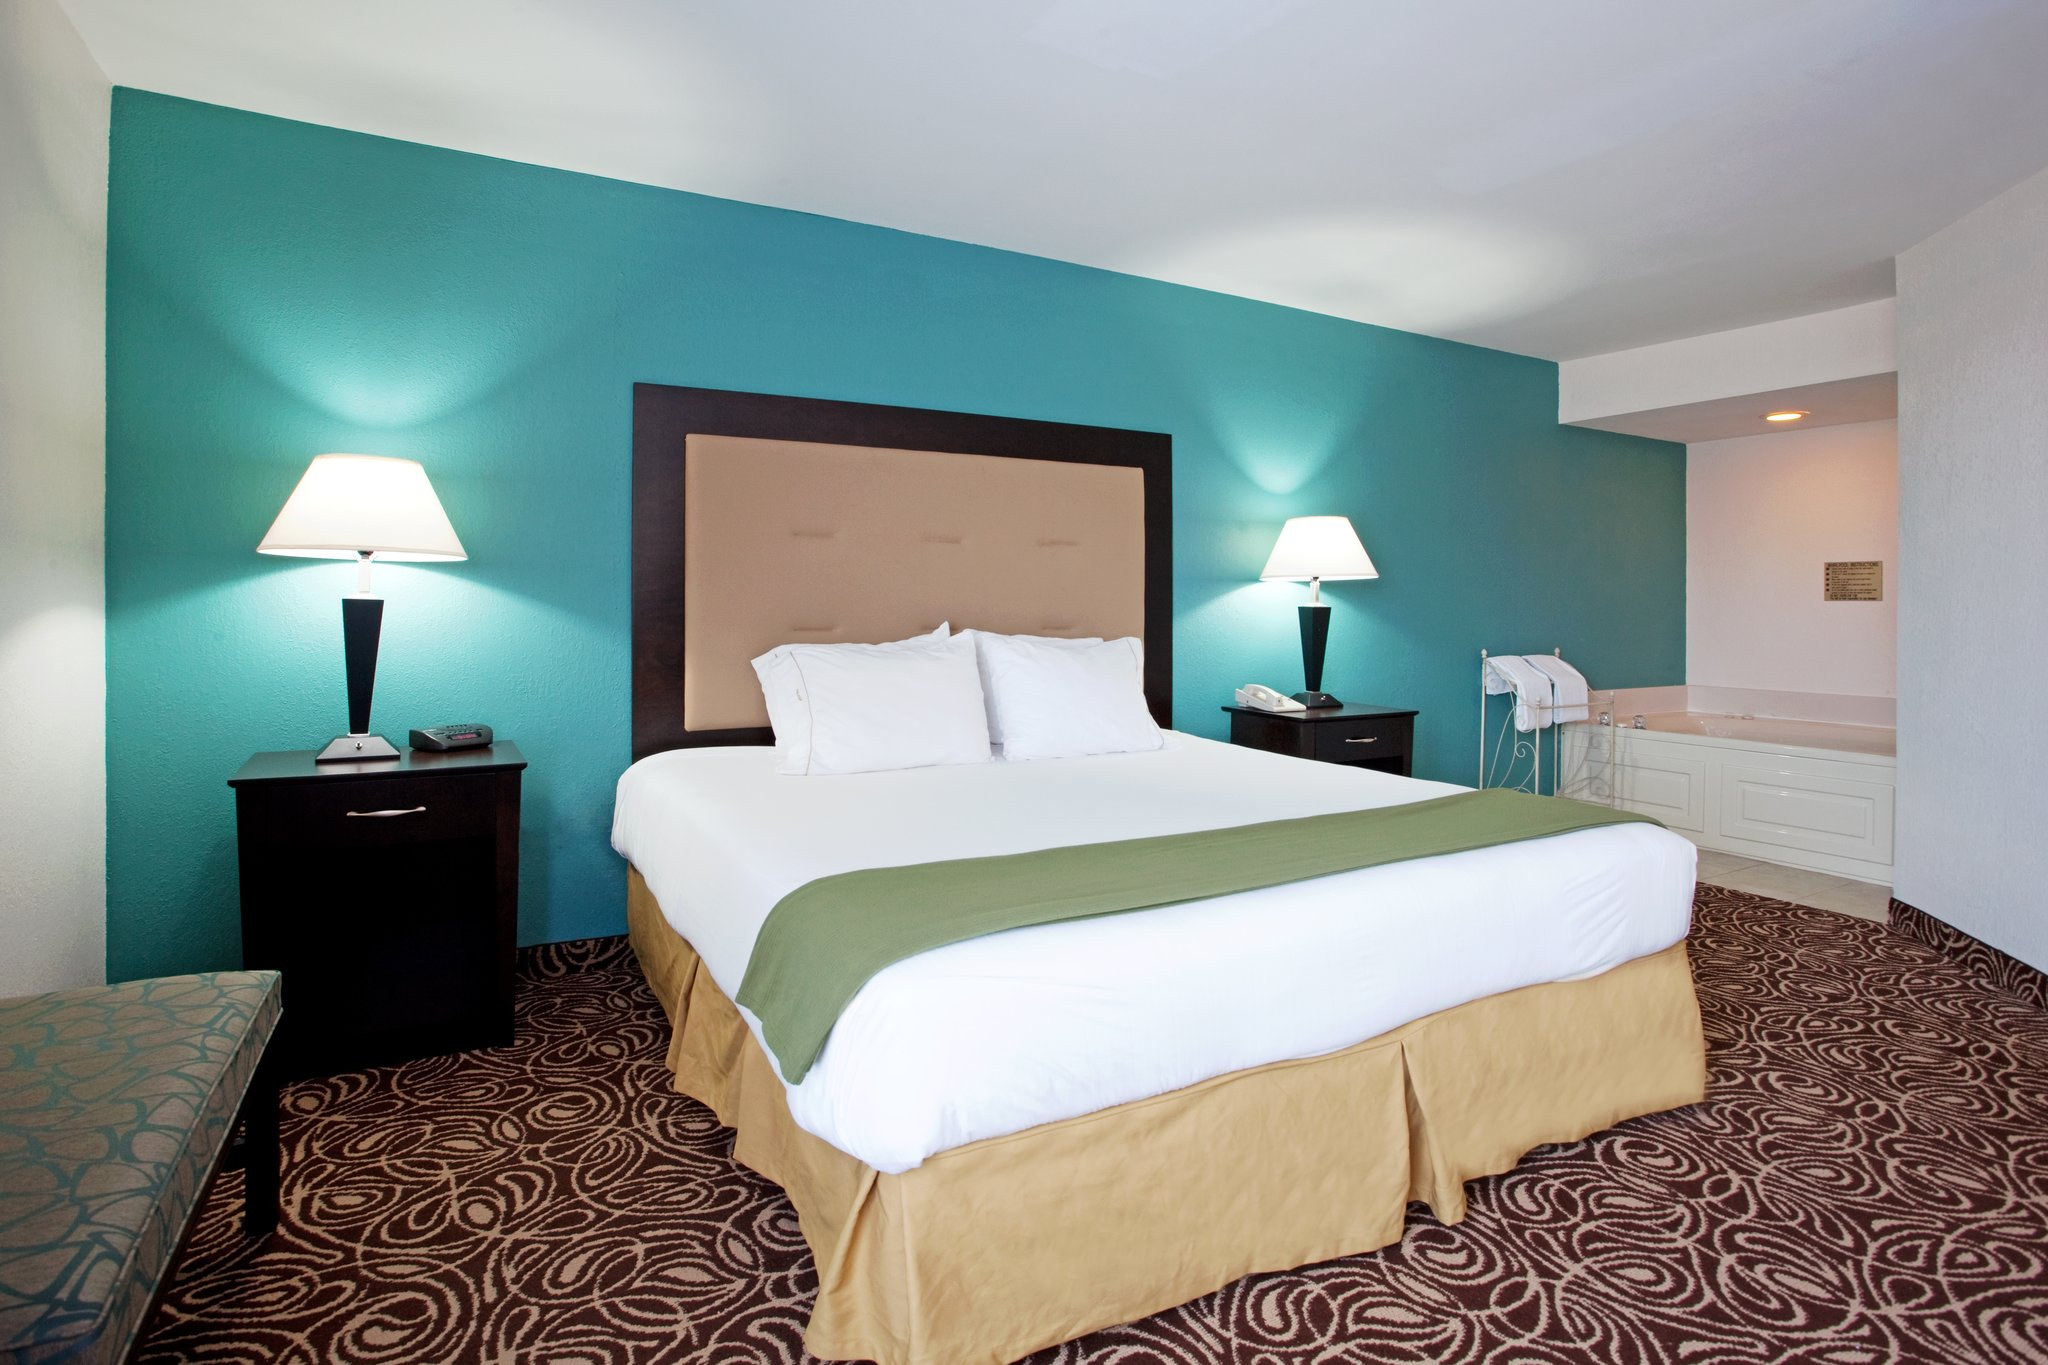 Two Bedroom Suite, first room with King bed and Wh